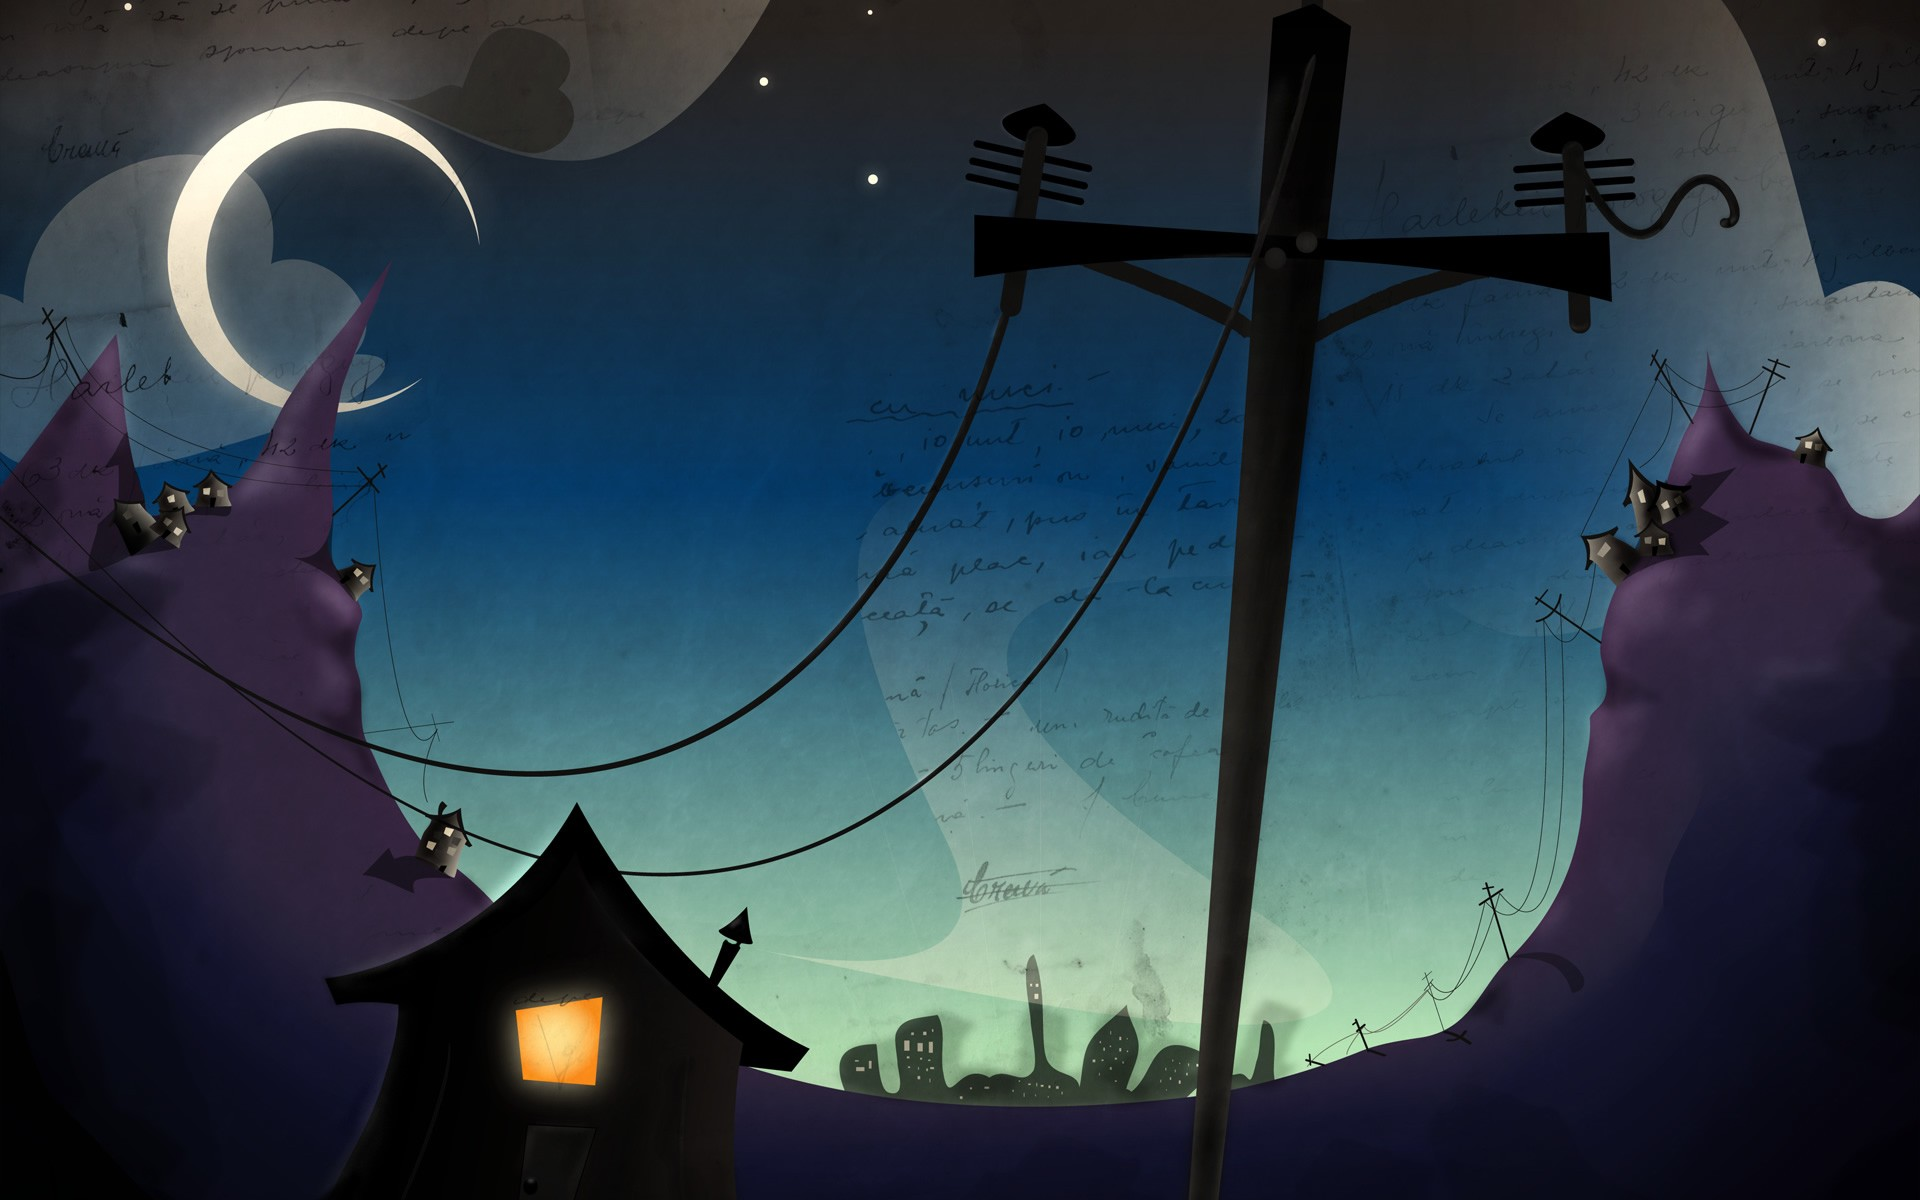 Stylish creative wallpaper with houses, hills and the moon